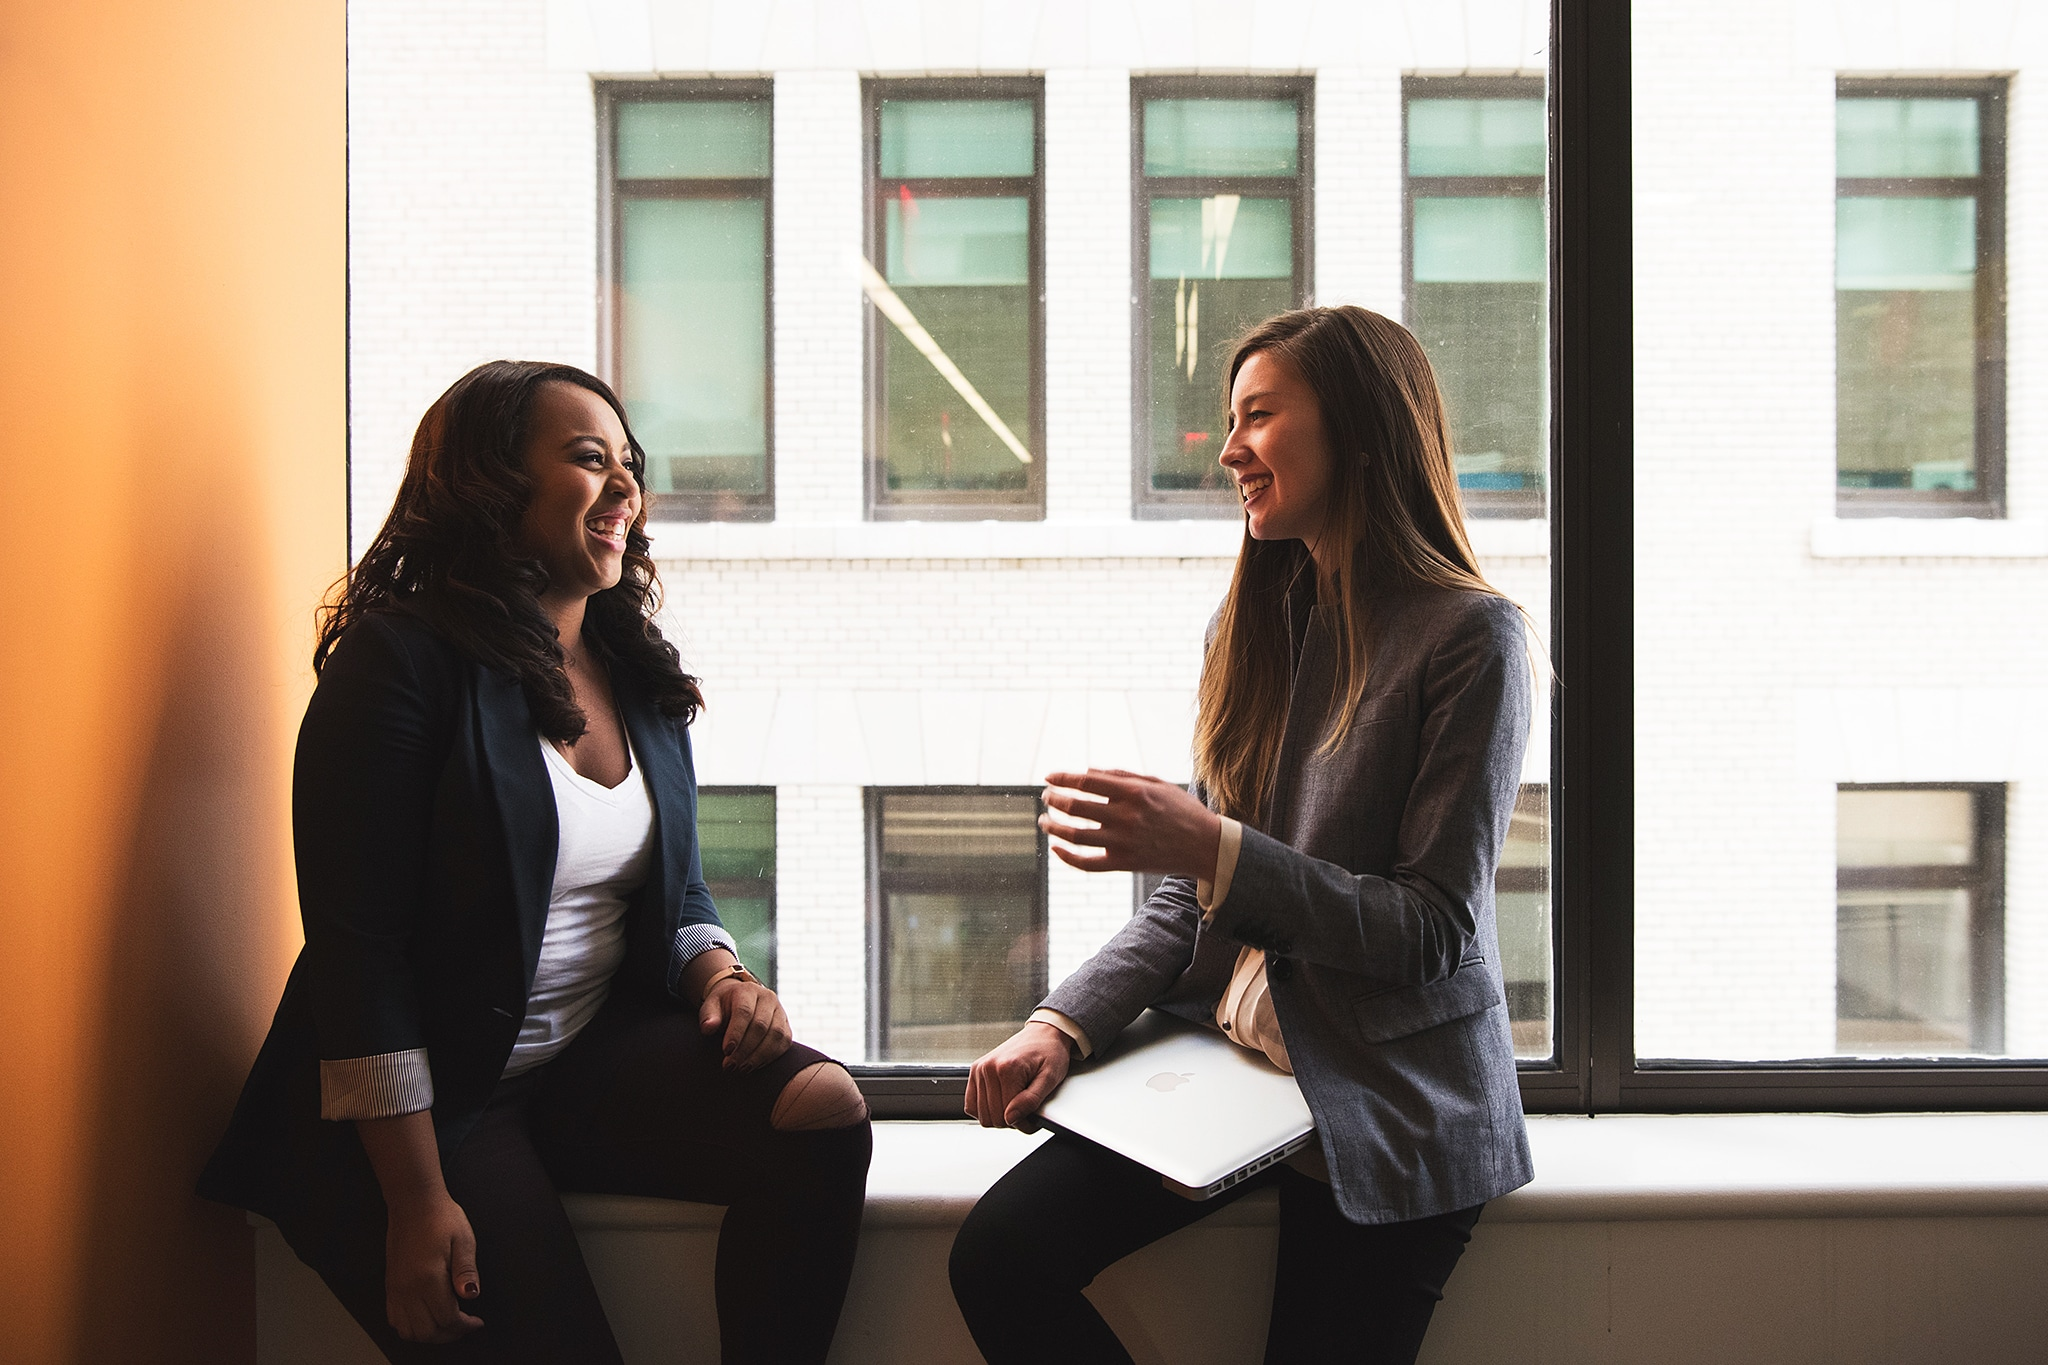 Two joyous women of color discussing intersectionality in the classroom